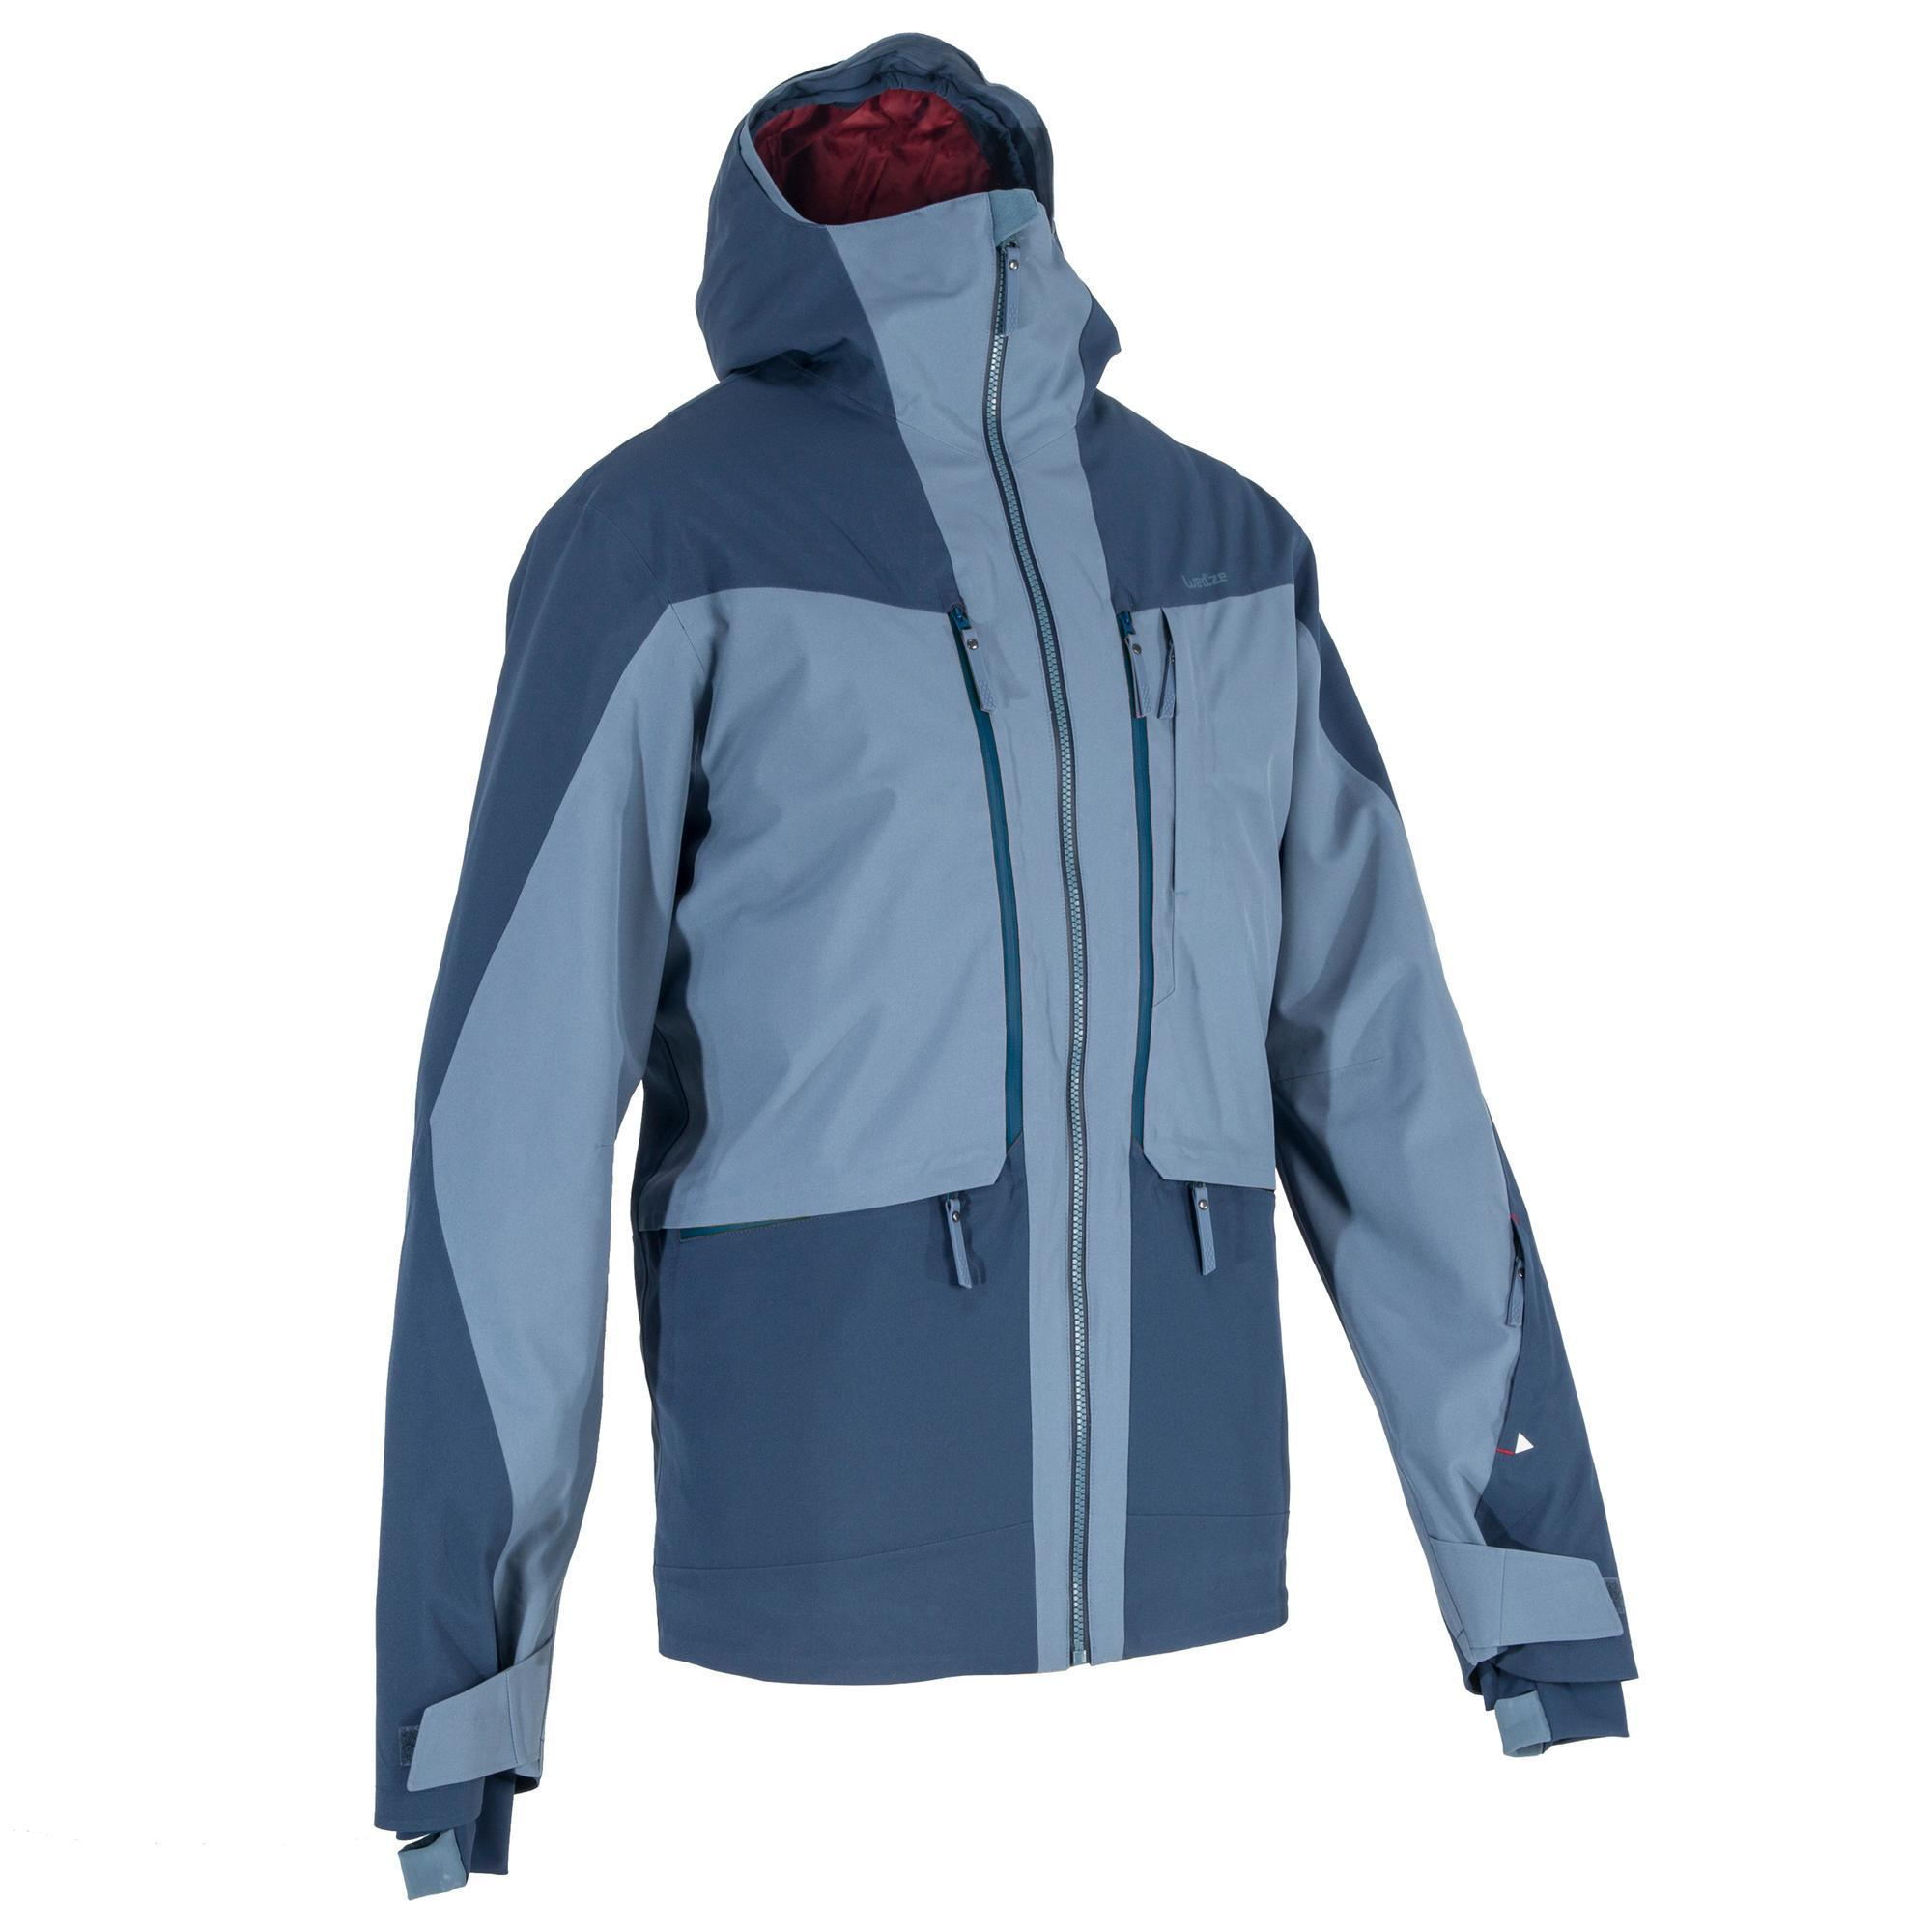 1a0a73ae70c Jacket AM900 Men s All Mountain Ski Jacket - Blue - Decathlon